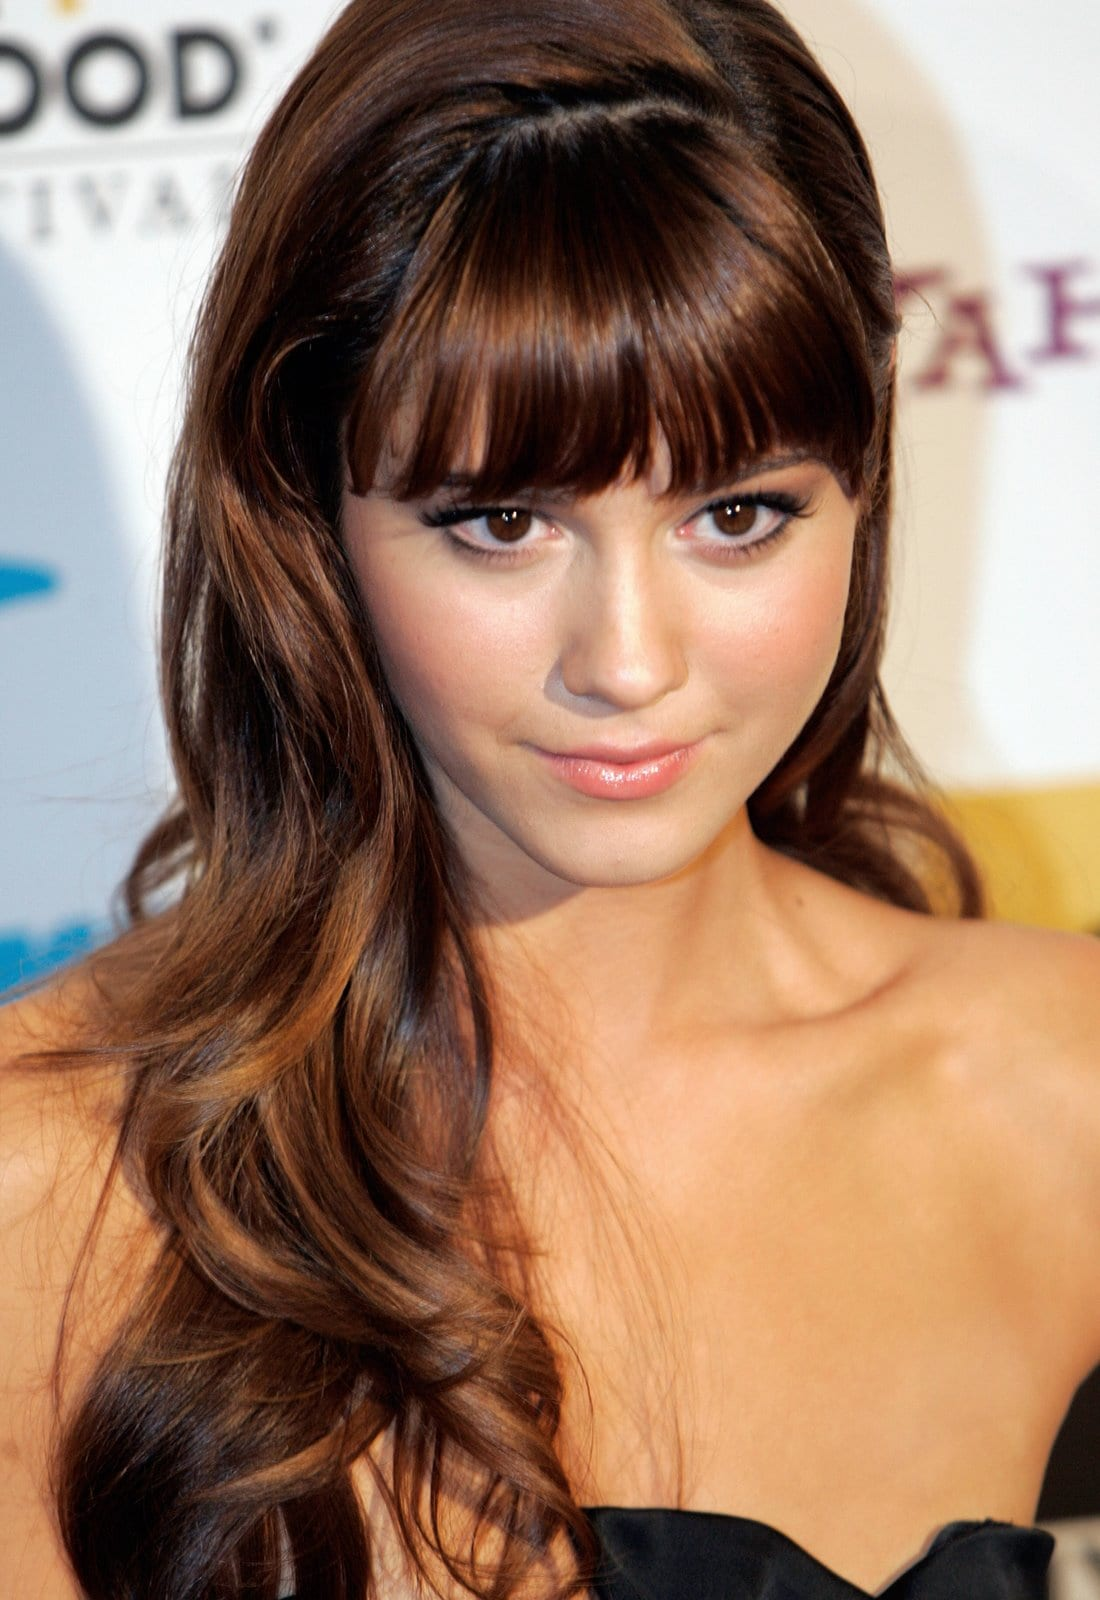 Mary Elizabeth Winstead Pic 05 Posted by tattoo nude at 16:00